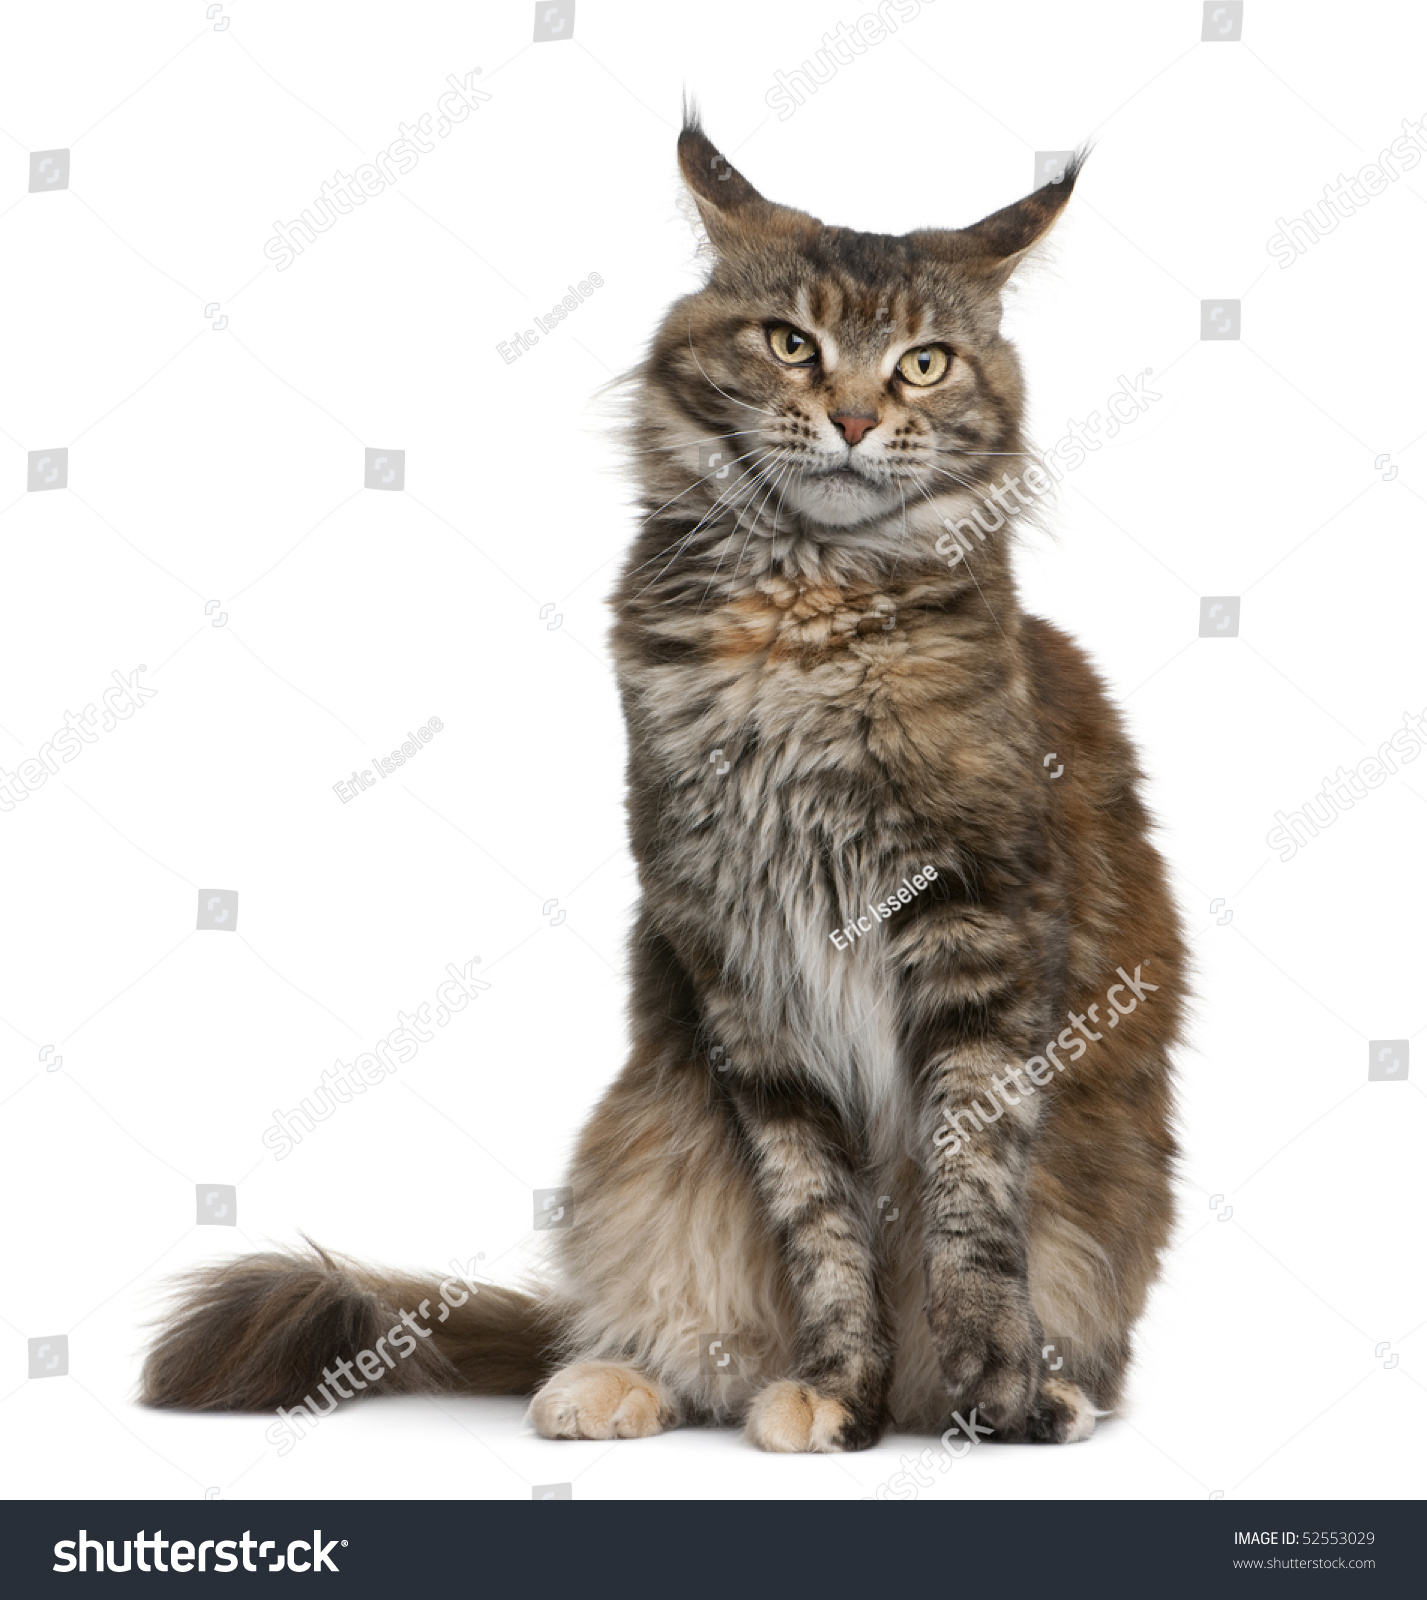 Maine coon 3 years old